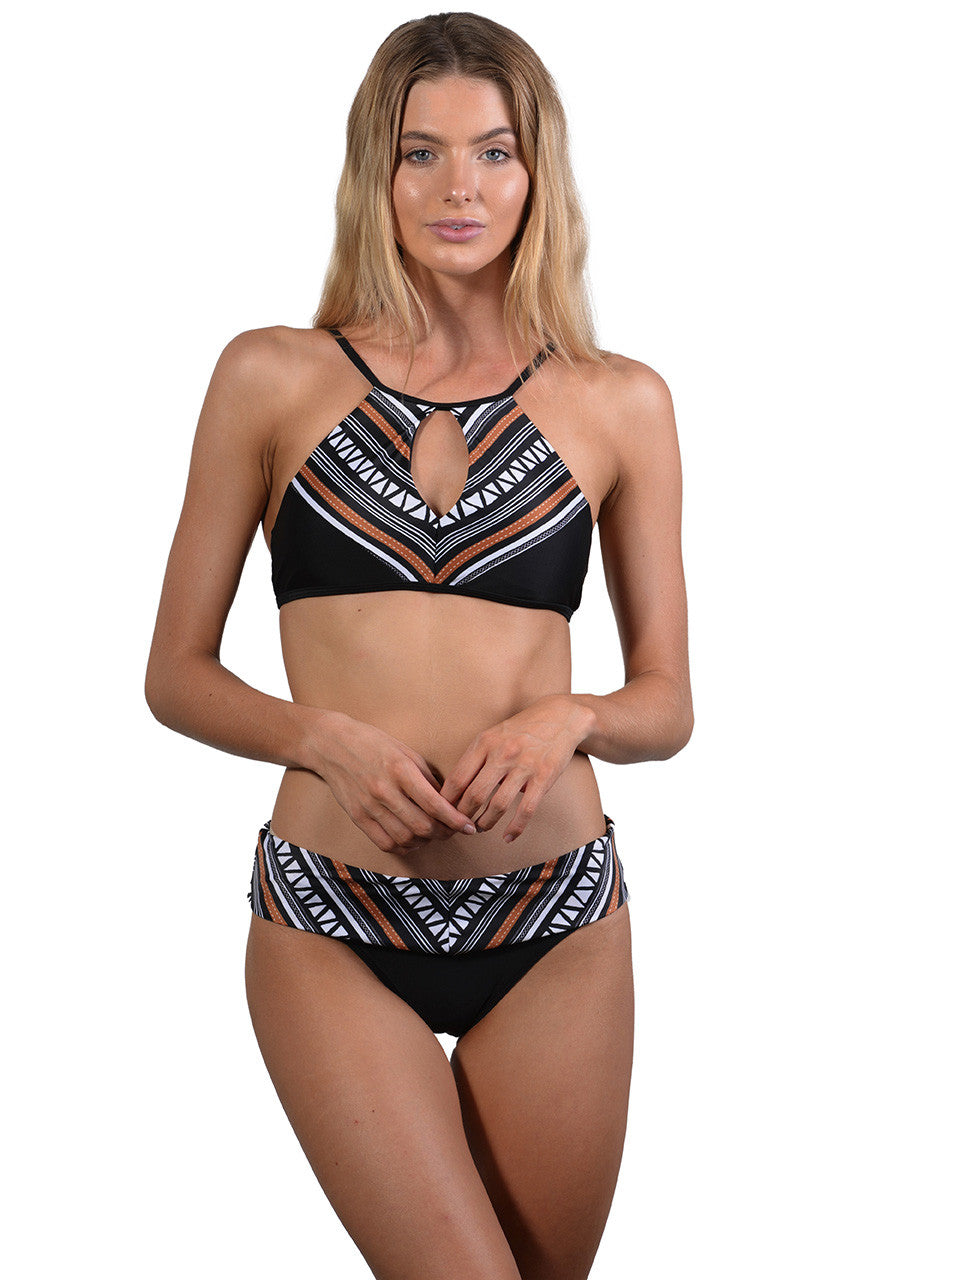 Zulu Band Bikini Pant by Finch Swim